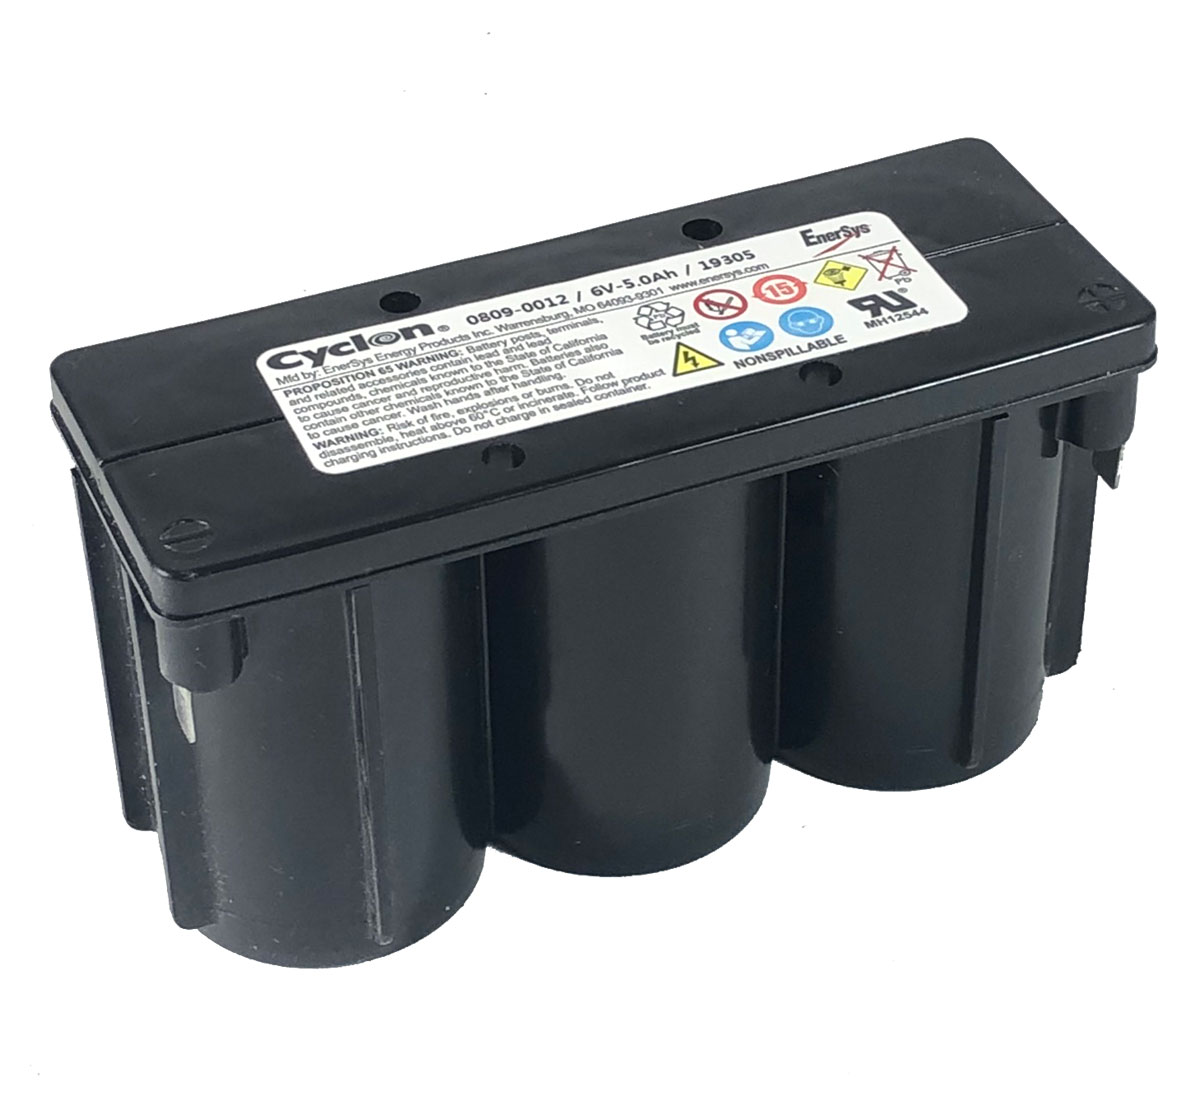 Enersys Hawker 0809-0012 Cyclon 6V 5Ah Monobloc Battery